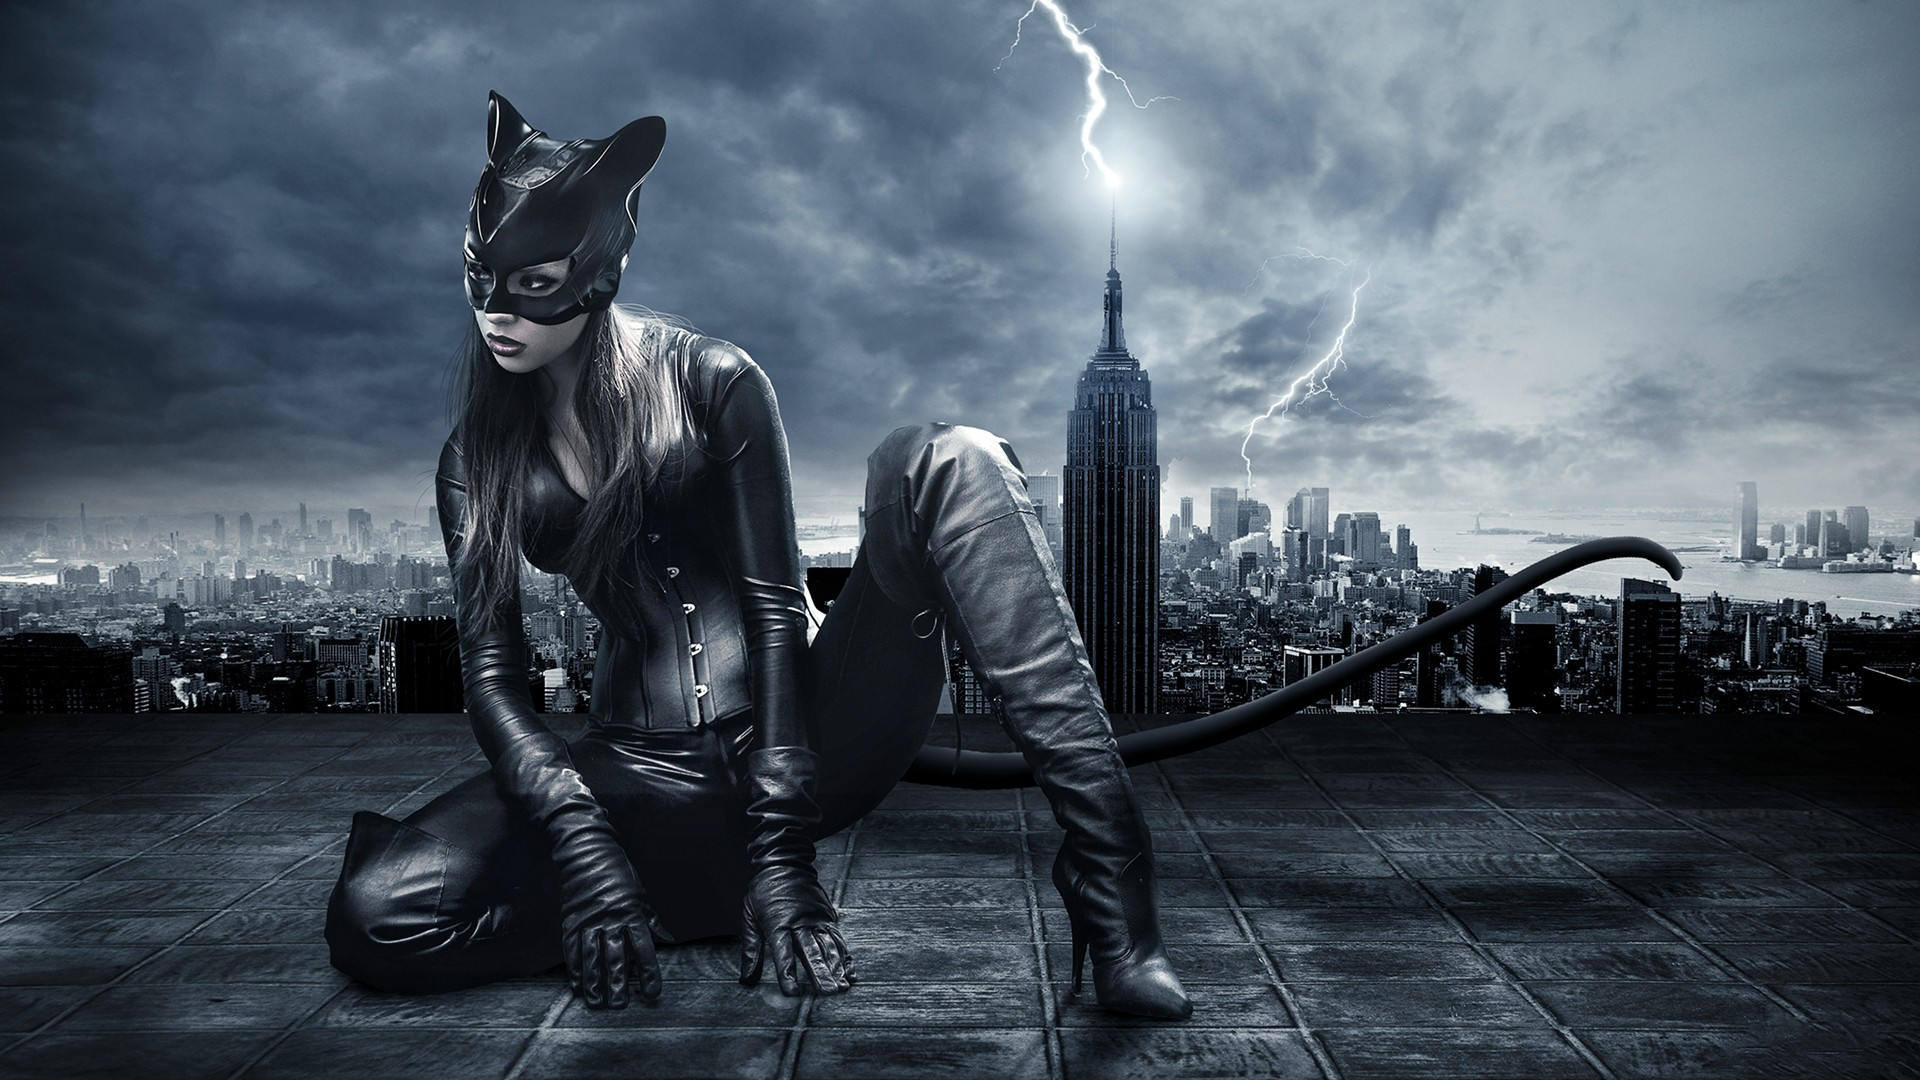 Catwoman WallDevil   Best desktop and mobile wallpapers 1920x1080